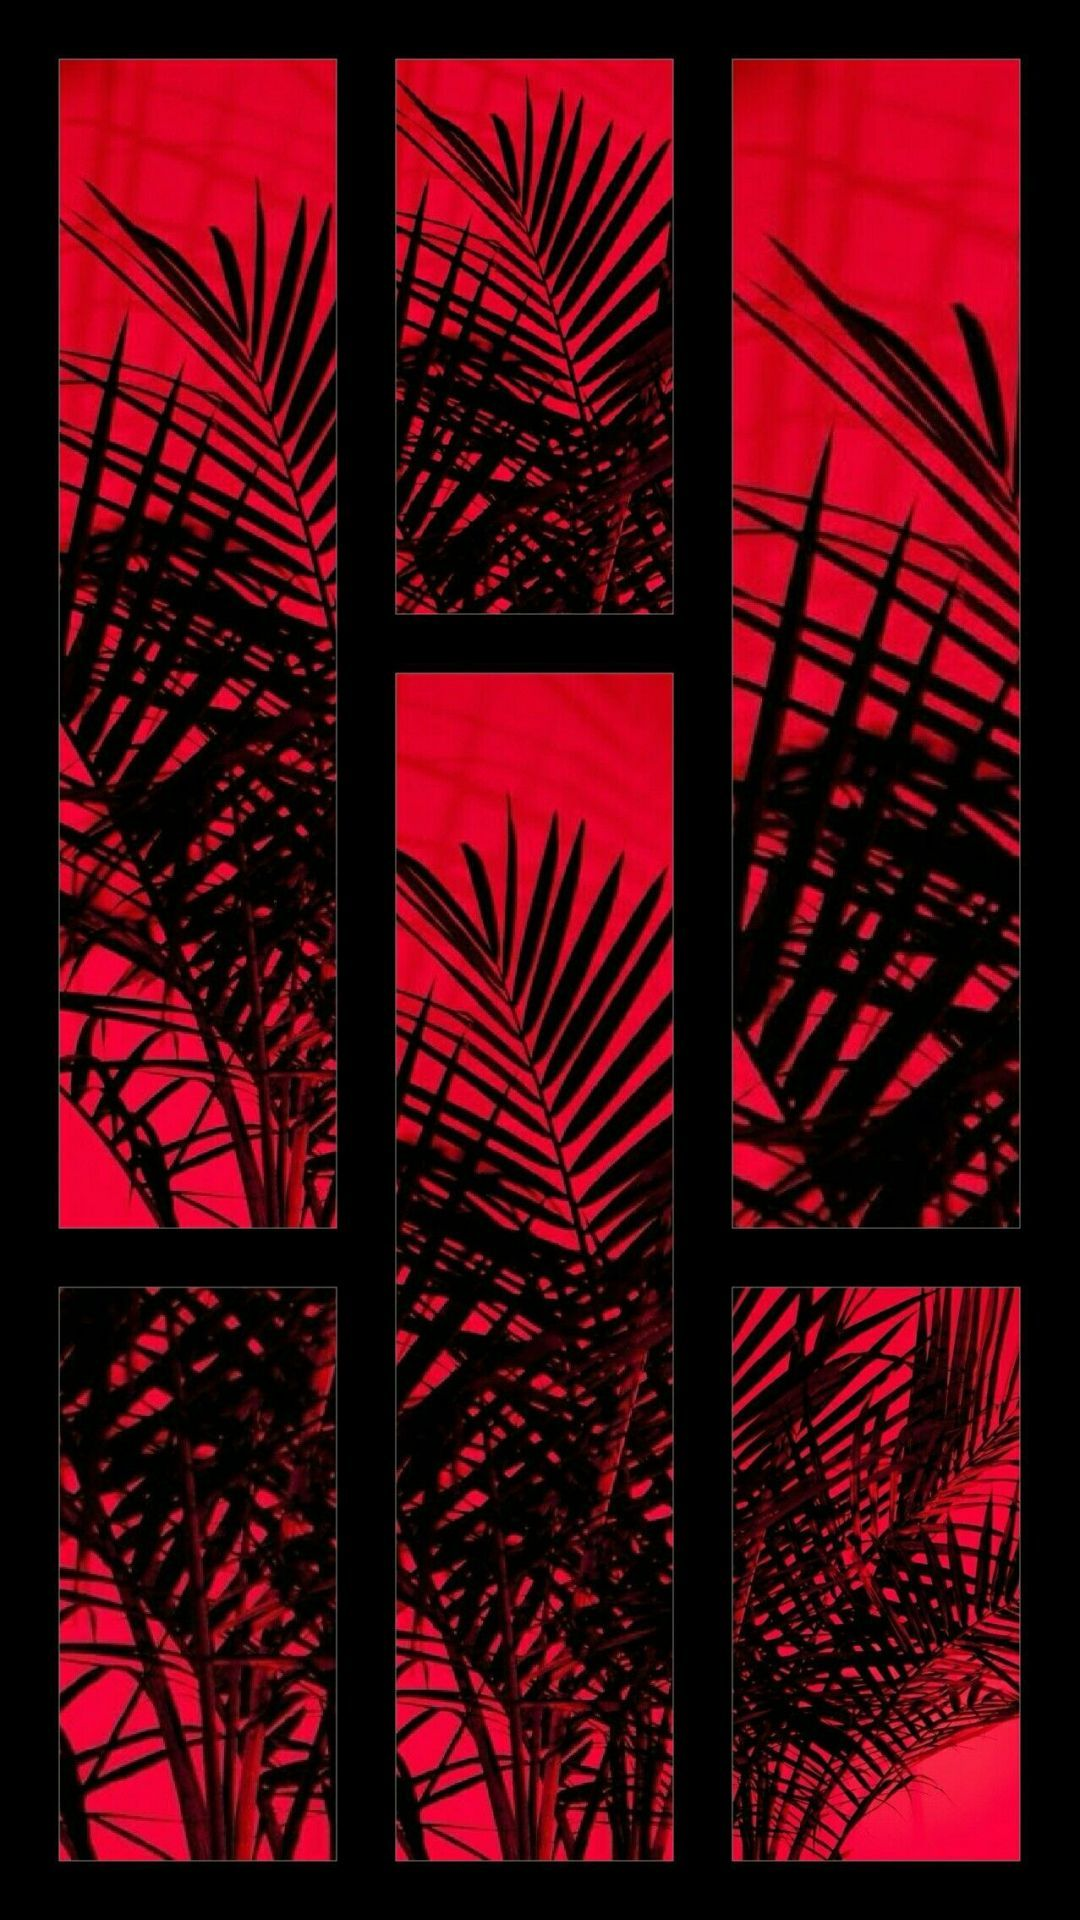 Red Aesthetic iPhone Wallpapers 1080×1920